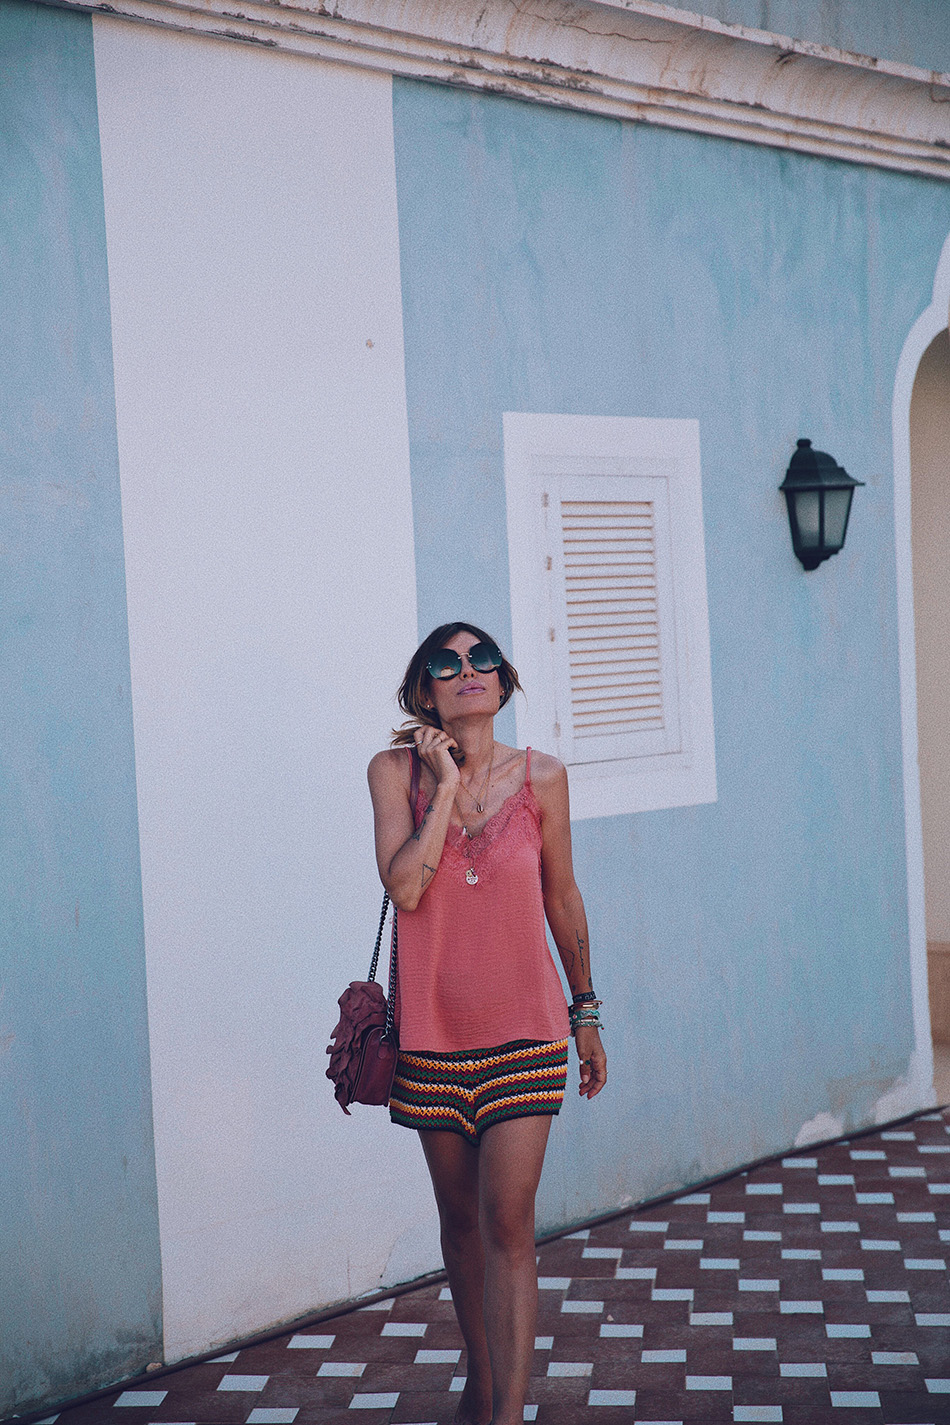 Bárbara Crespo streetstyle. Multicolored crochet shorts and lingery top. Summer style. Coachella